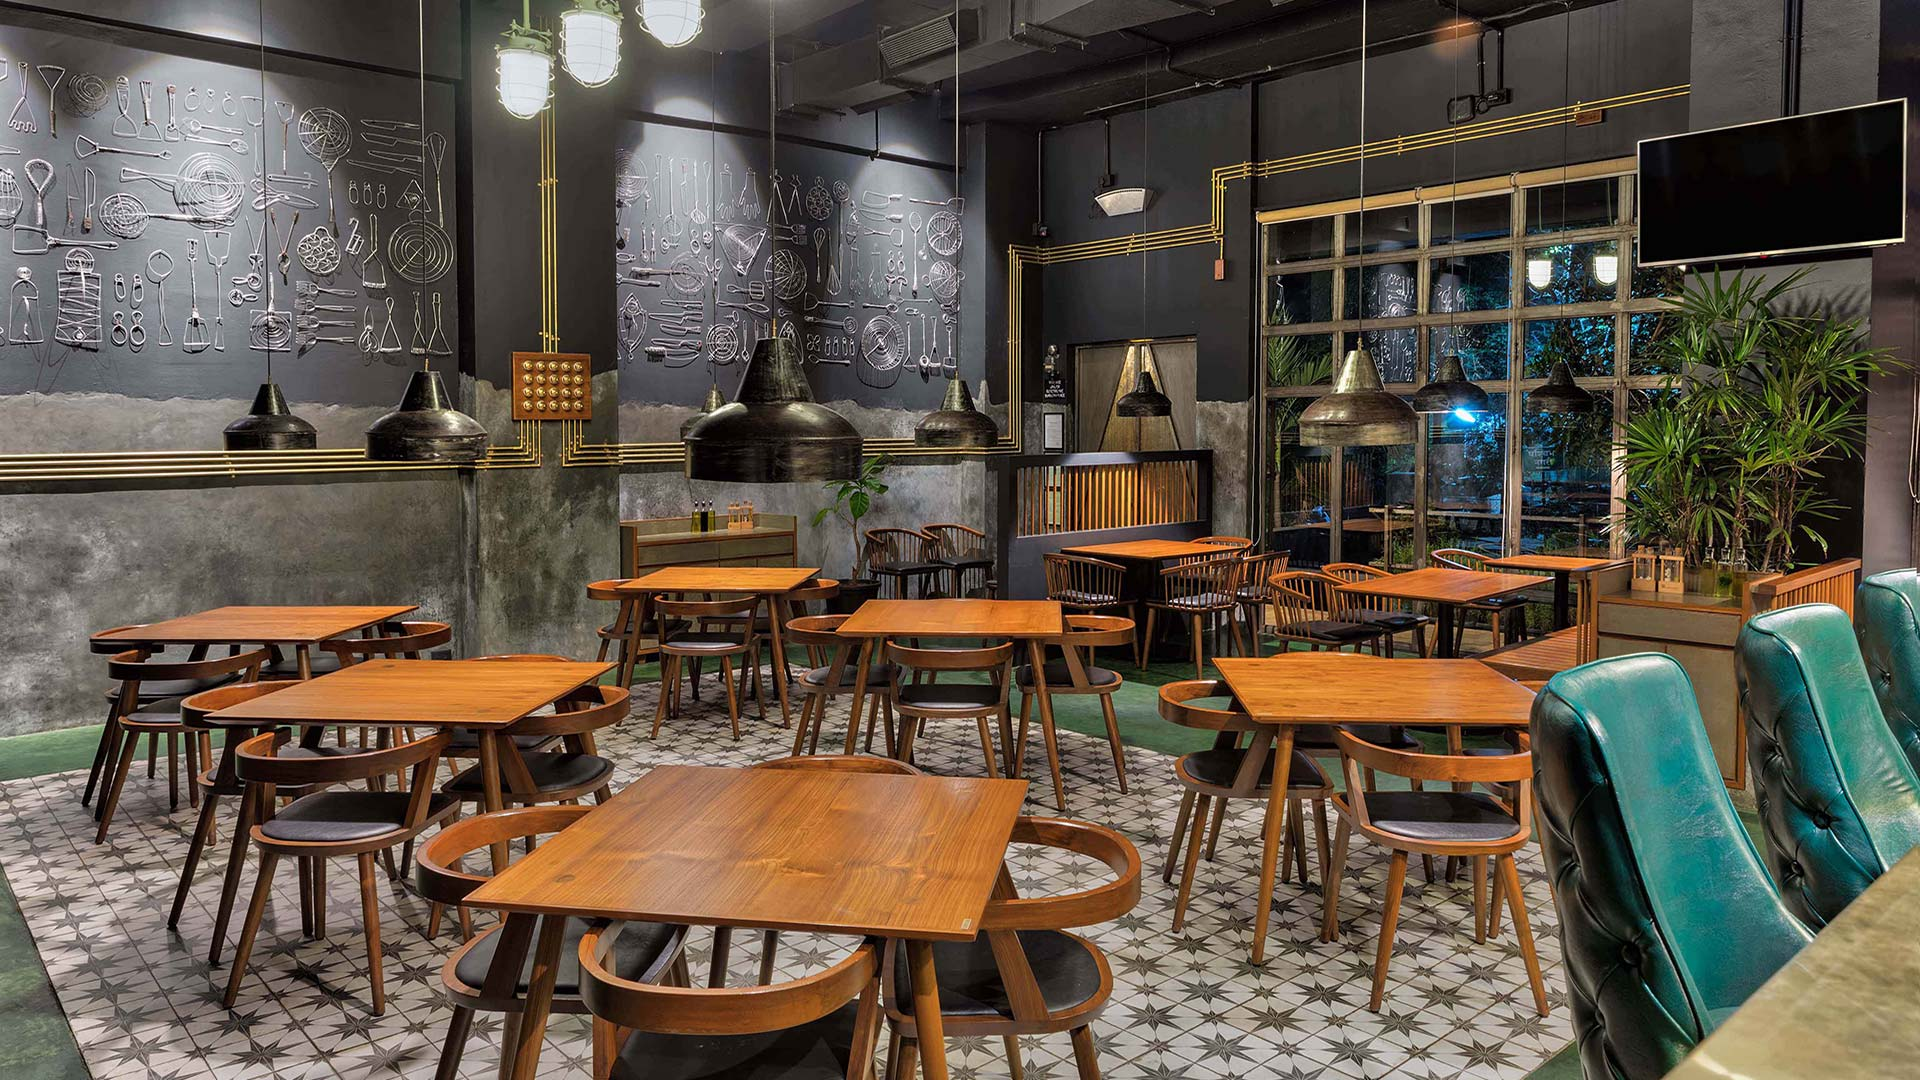 Punes Barometer restaurant champions concrete in its interior design